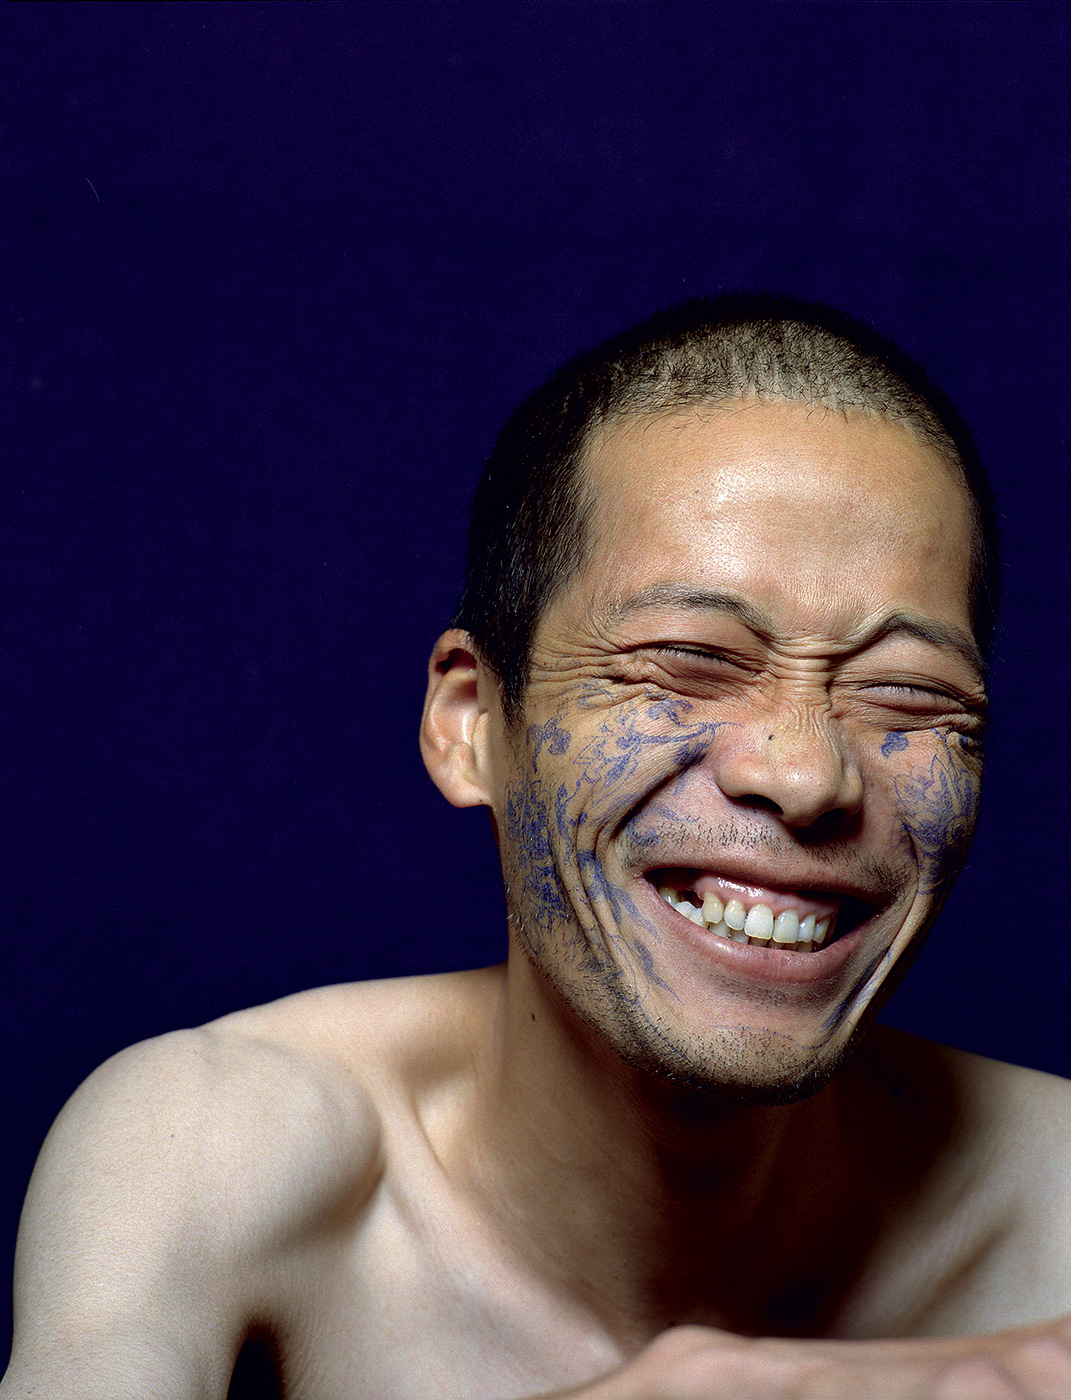 Haifeng Ni - Self-Portrait as Part of the Porcelain Export History 3 - smile, 1999-2001